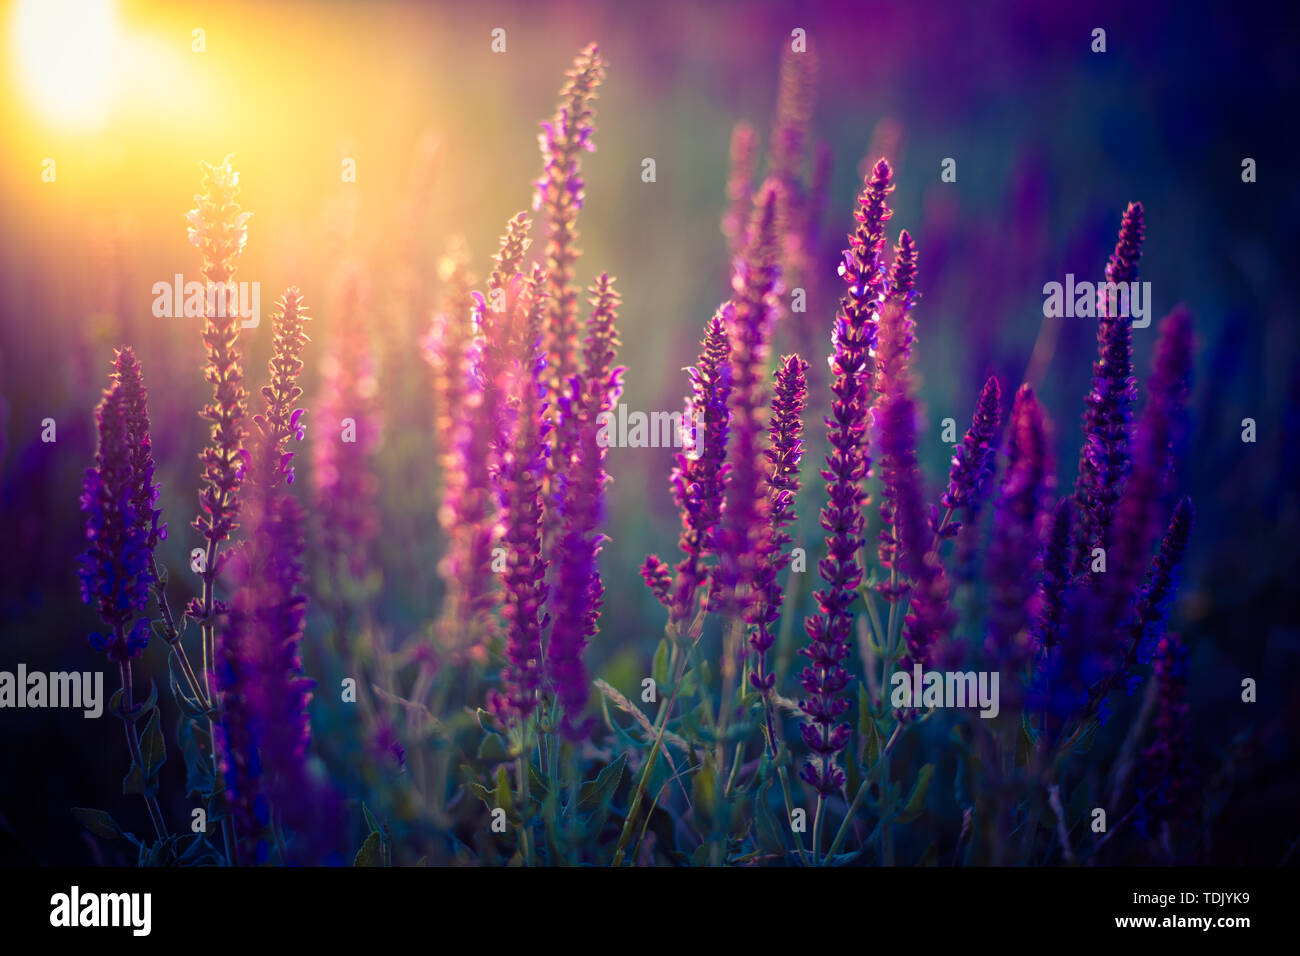 Dark Field Image With Purple Flowers At Sunset With The Sun Stock Photo Alamy